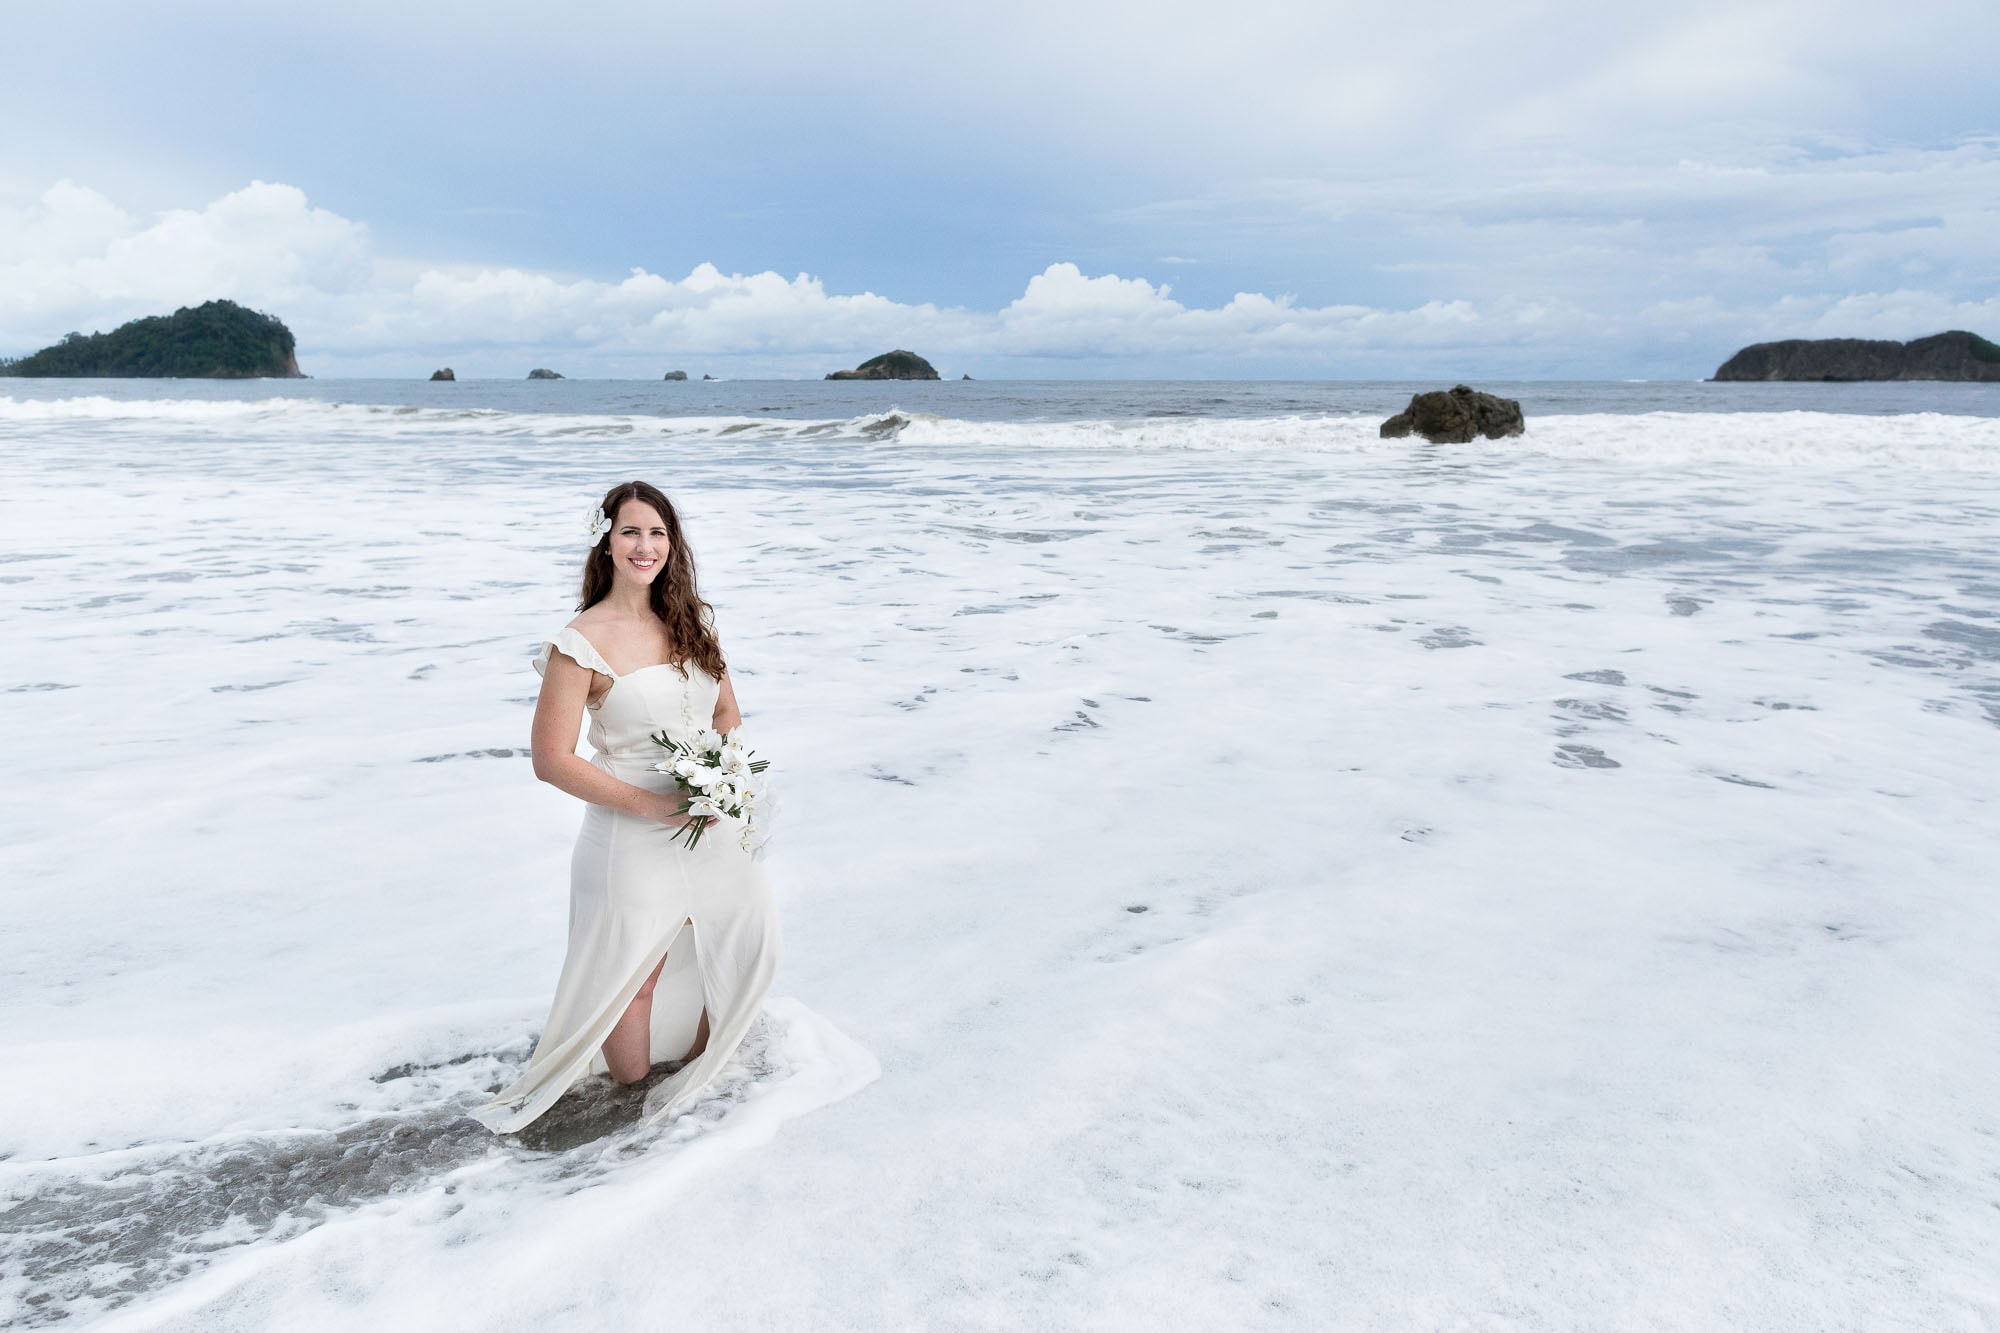 The bride posing in the waves after her beach elopement